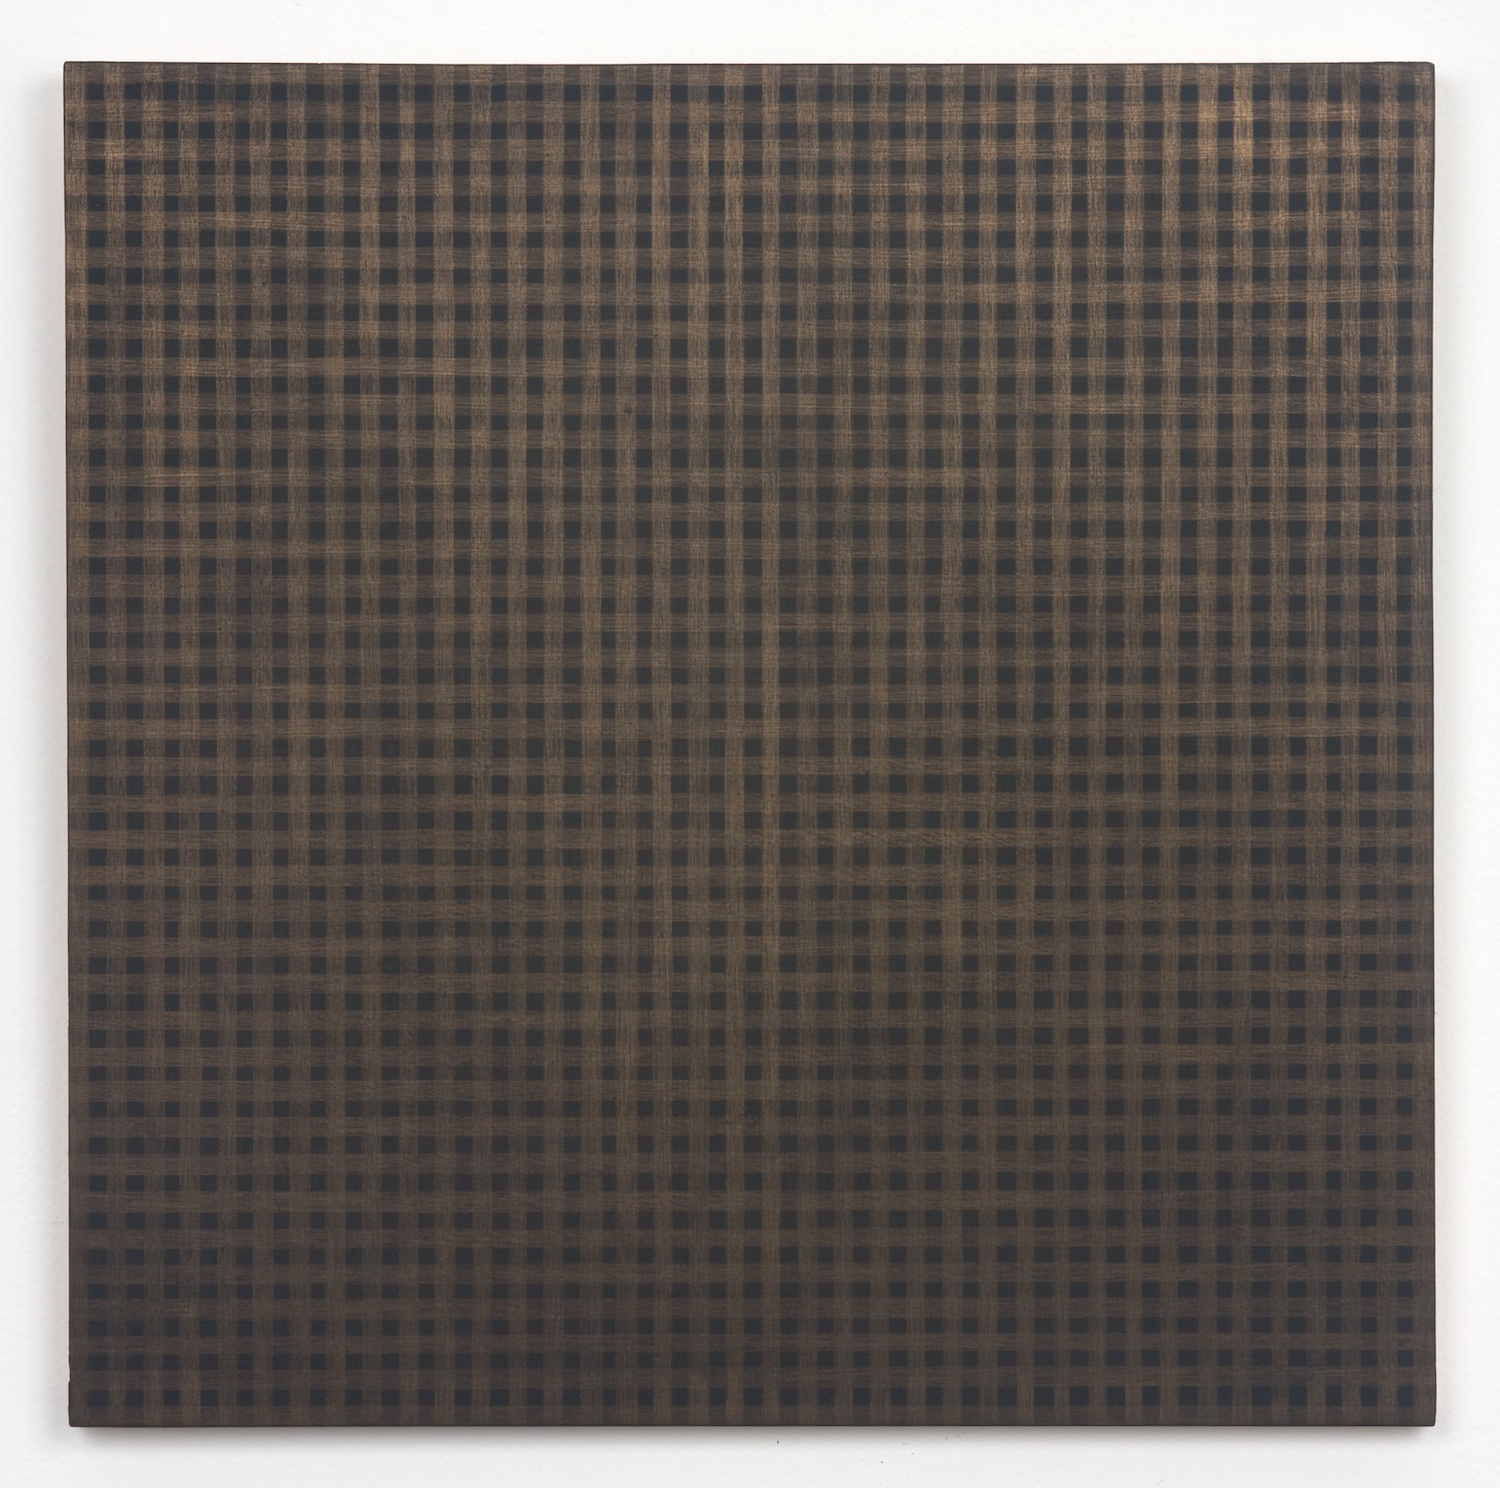 Michelle Grabner  Untitled  2010 Gold and gesso on panel 15h x 15w in MGrab187